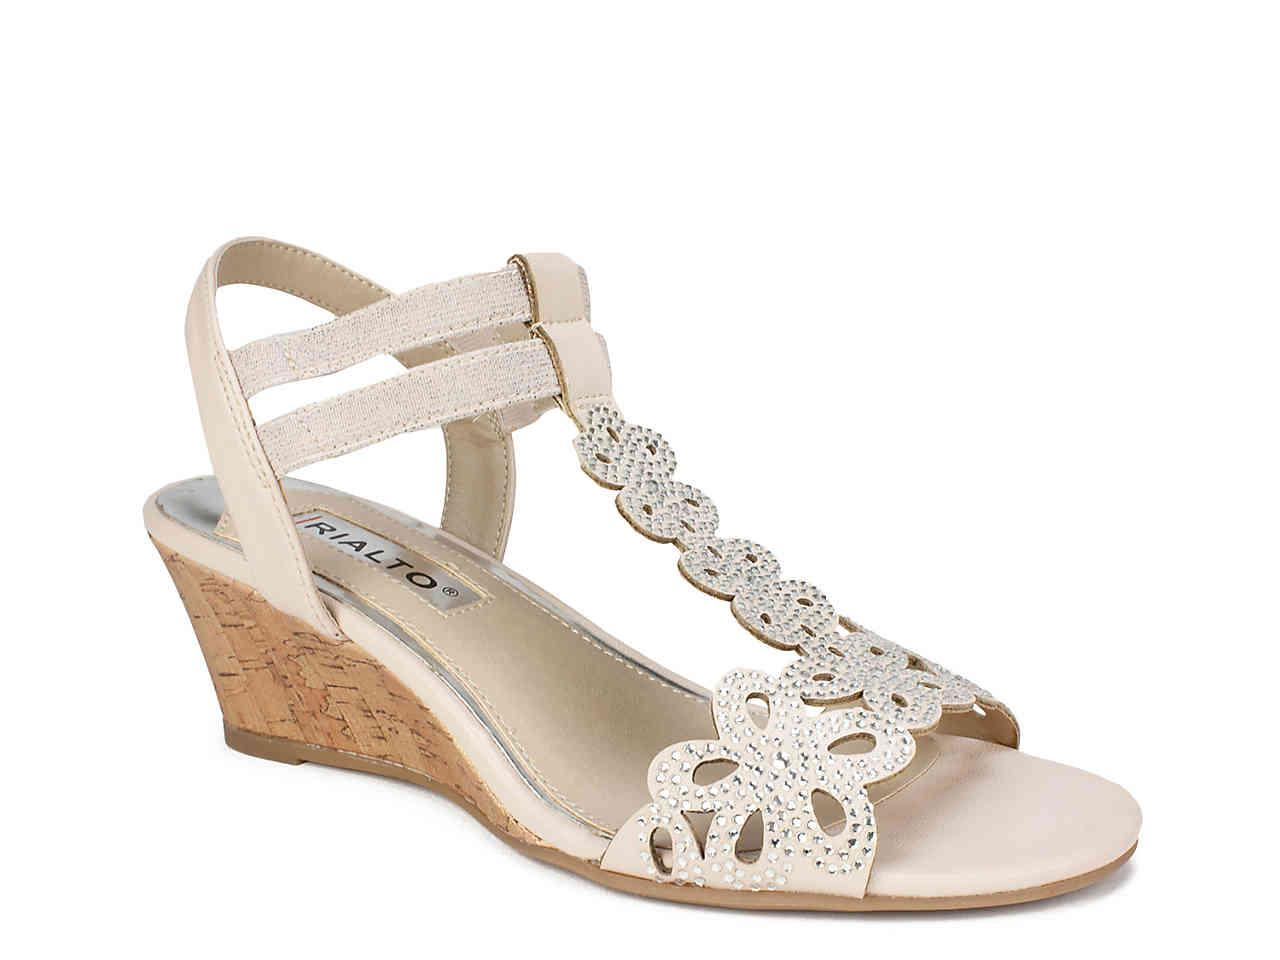 aa7e6a32800 Lyst - Rialto Cafell Wedge Sandal in Metallic